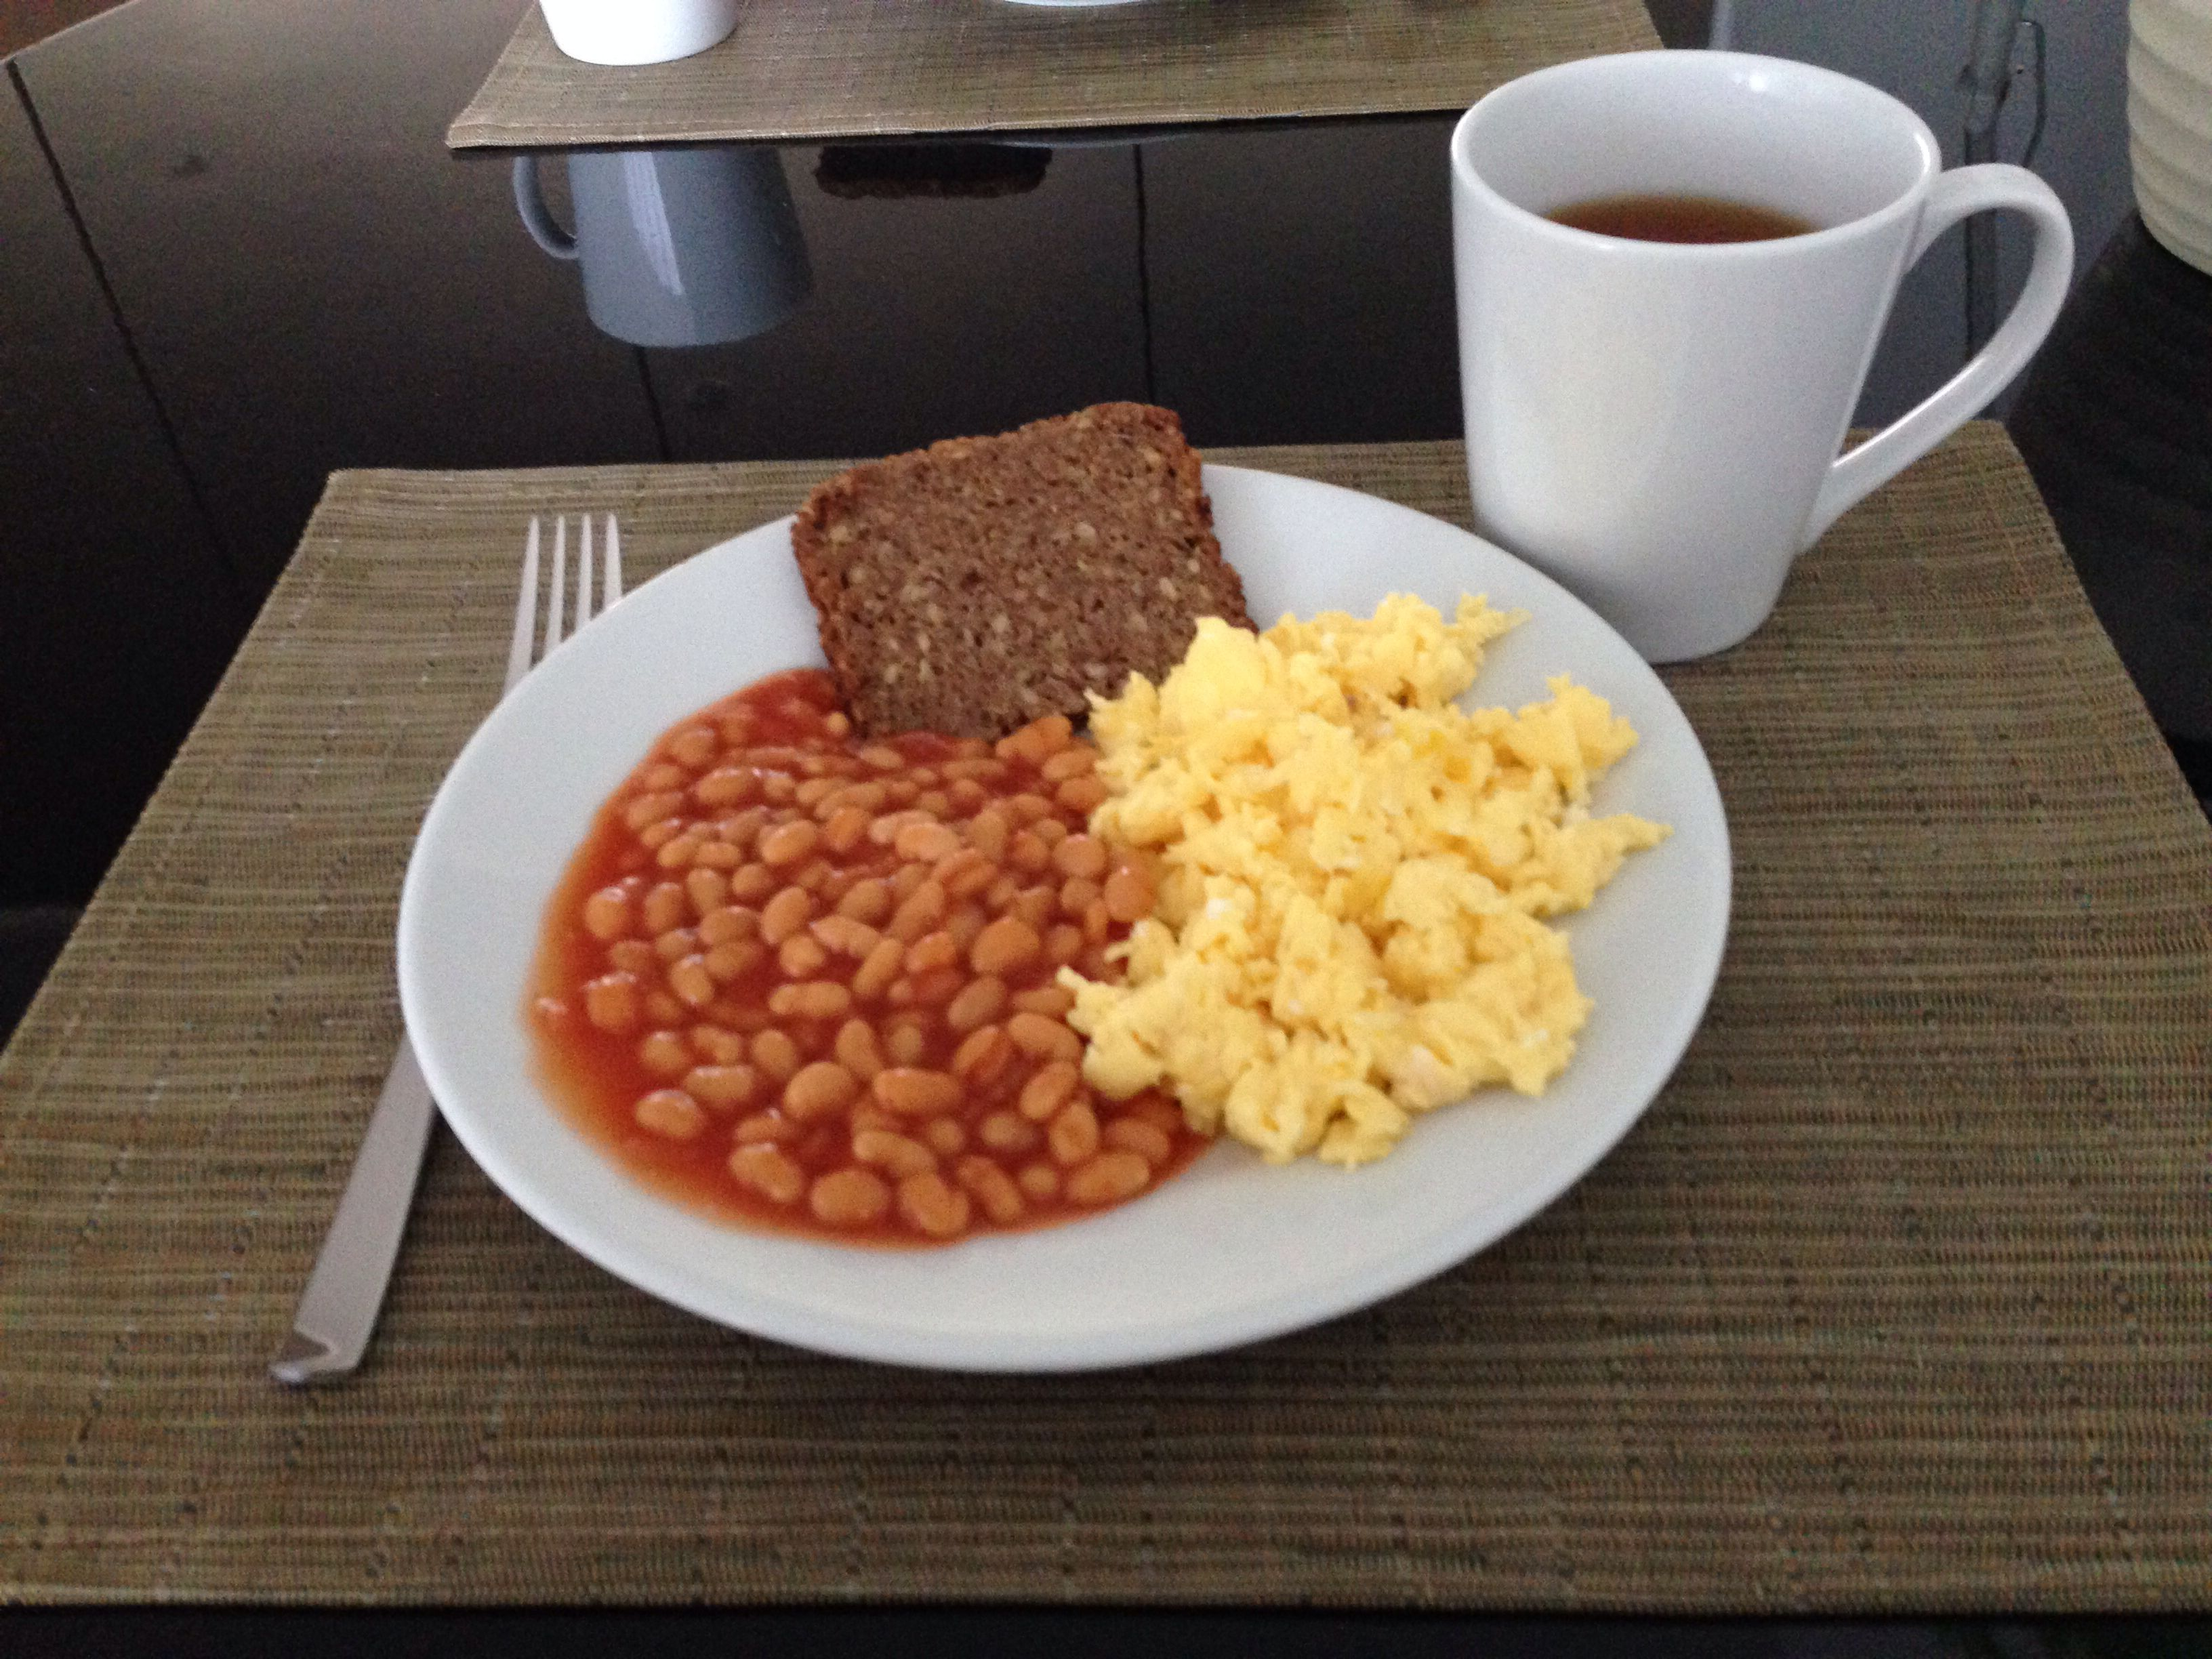 Scrambled eggs, beans, rye bread. 320 calories. 9.8g fibre. Ingredients: 2  eggs, rye bread (30g), baked beans (150g).